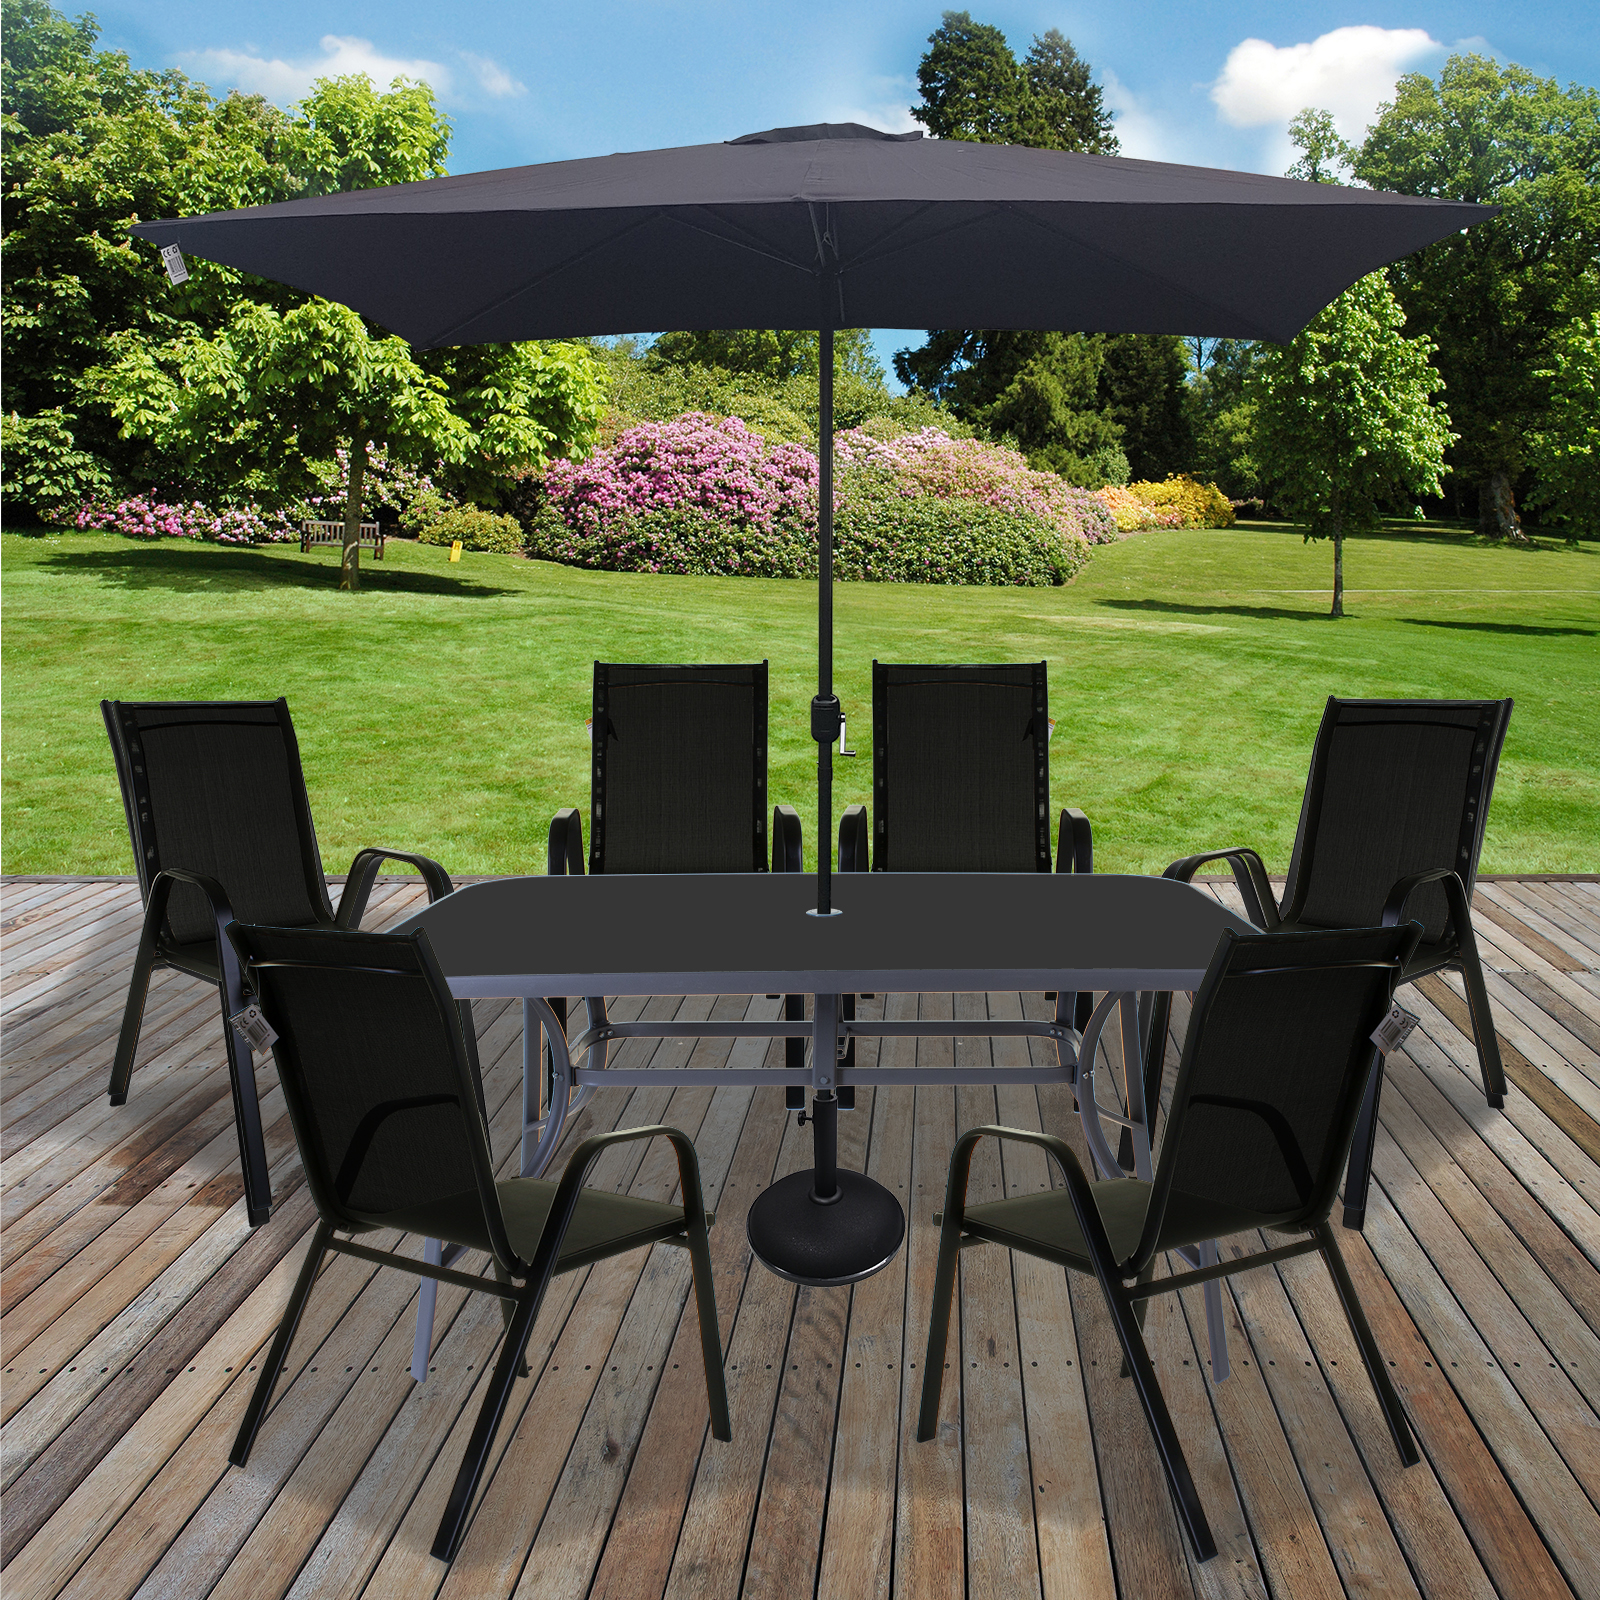 Details about Table & Chairs Set Outdoor Garden Patio Black Furniture Glass  Table Parasol Base